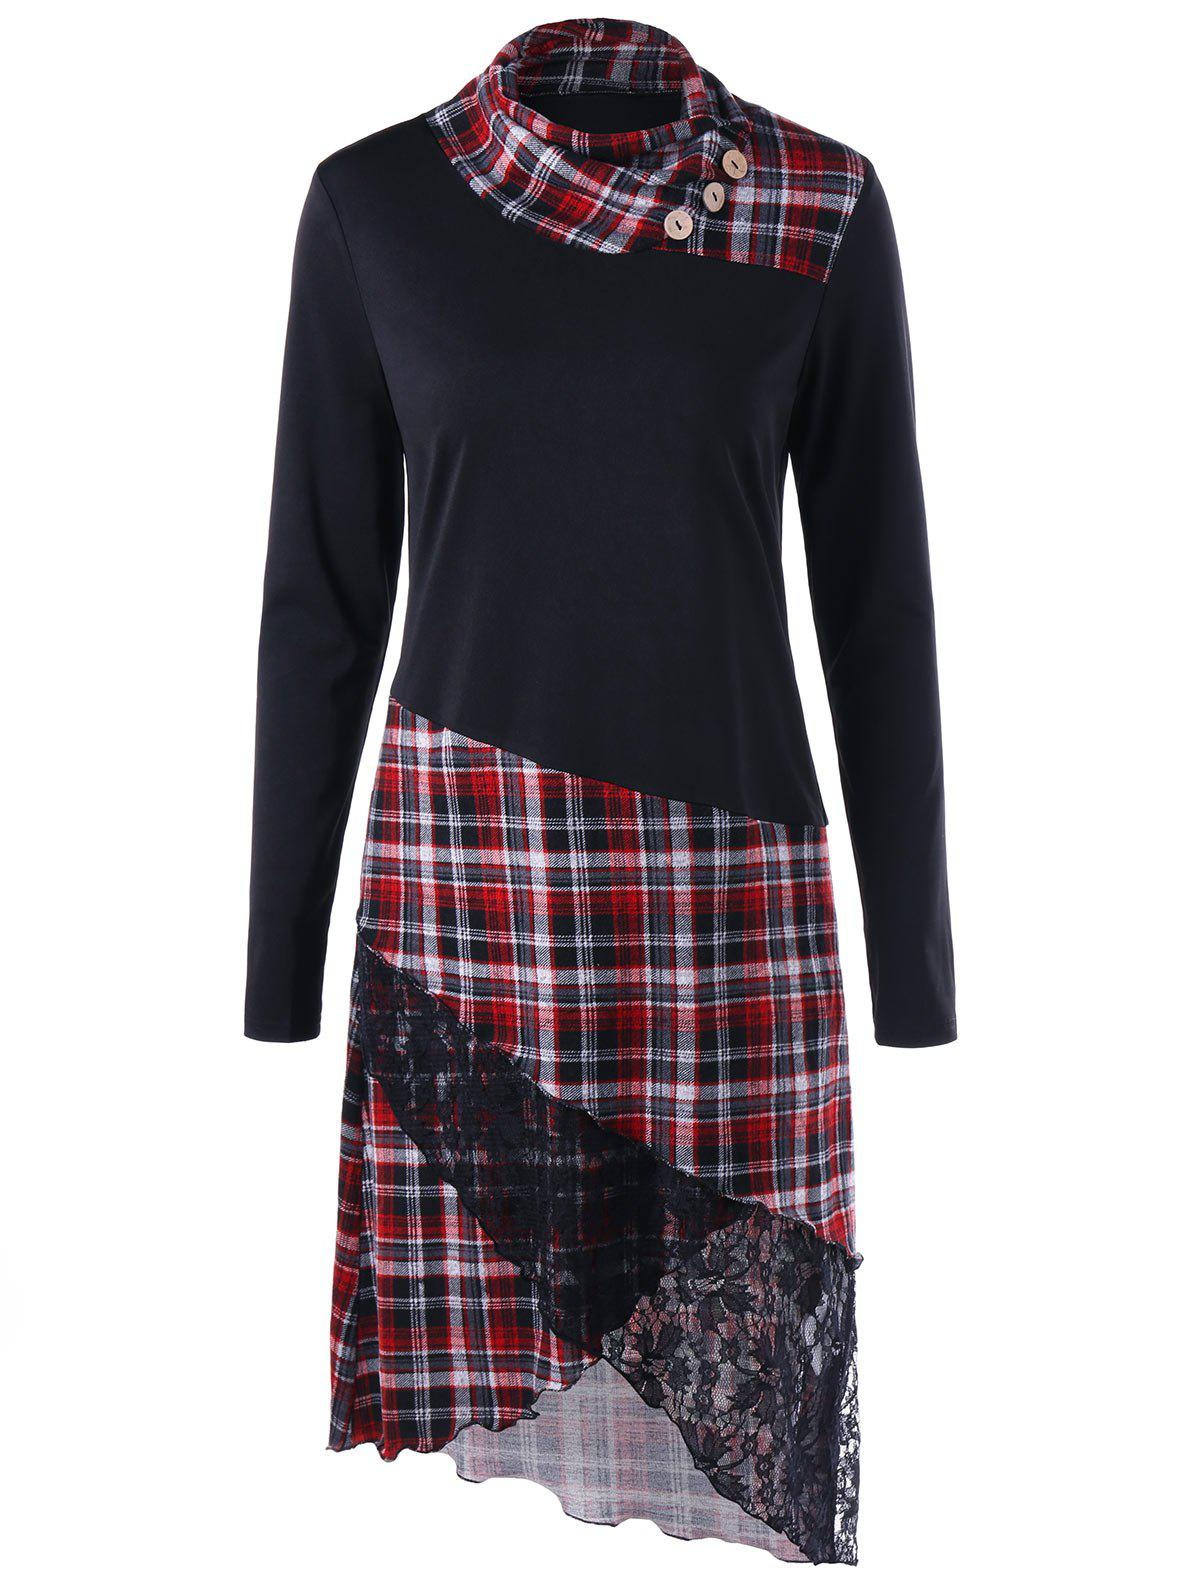 Lace Trim Plaid Overlap Tee DressWOMEN<br><br>Size: XL; Color: BLACK; Style: Casual; Material: Polyester,Spandex; Silhouette: Shift; Dresses Length: Knee-Length; Neckline: Heaps Collar; Sleeve Length: Long Sleeves; Embellishment: Button; Pattern Type: Plaid; With Belt: No; Season: Fall,Spring; Weight: 0.4000kg; Package Contents: 1 x Dress; Occasion: Casual ,Going Out;